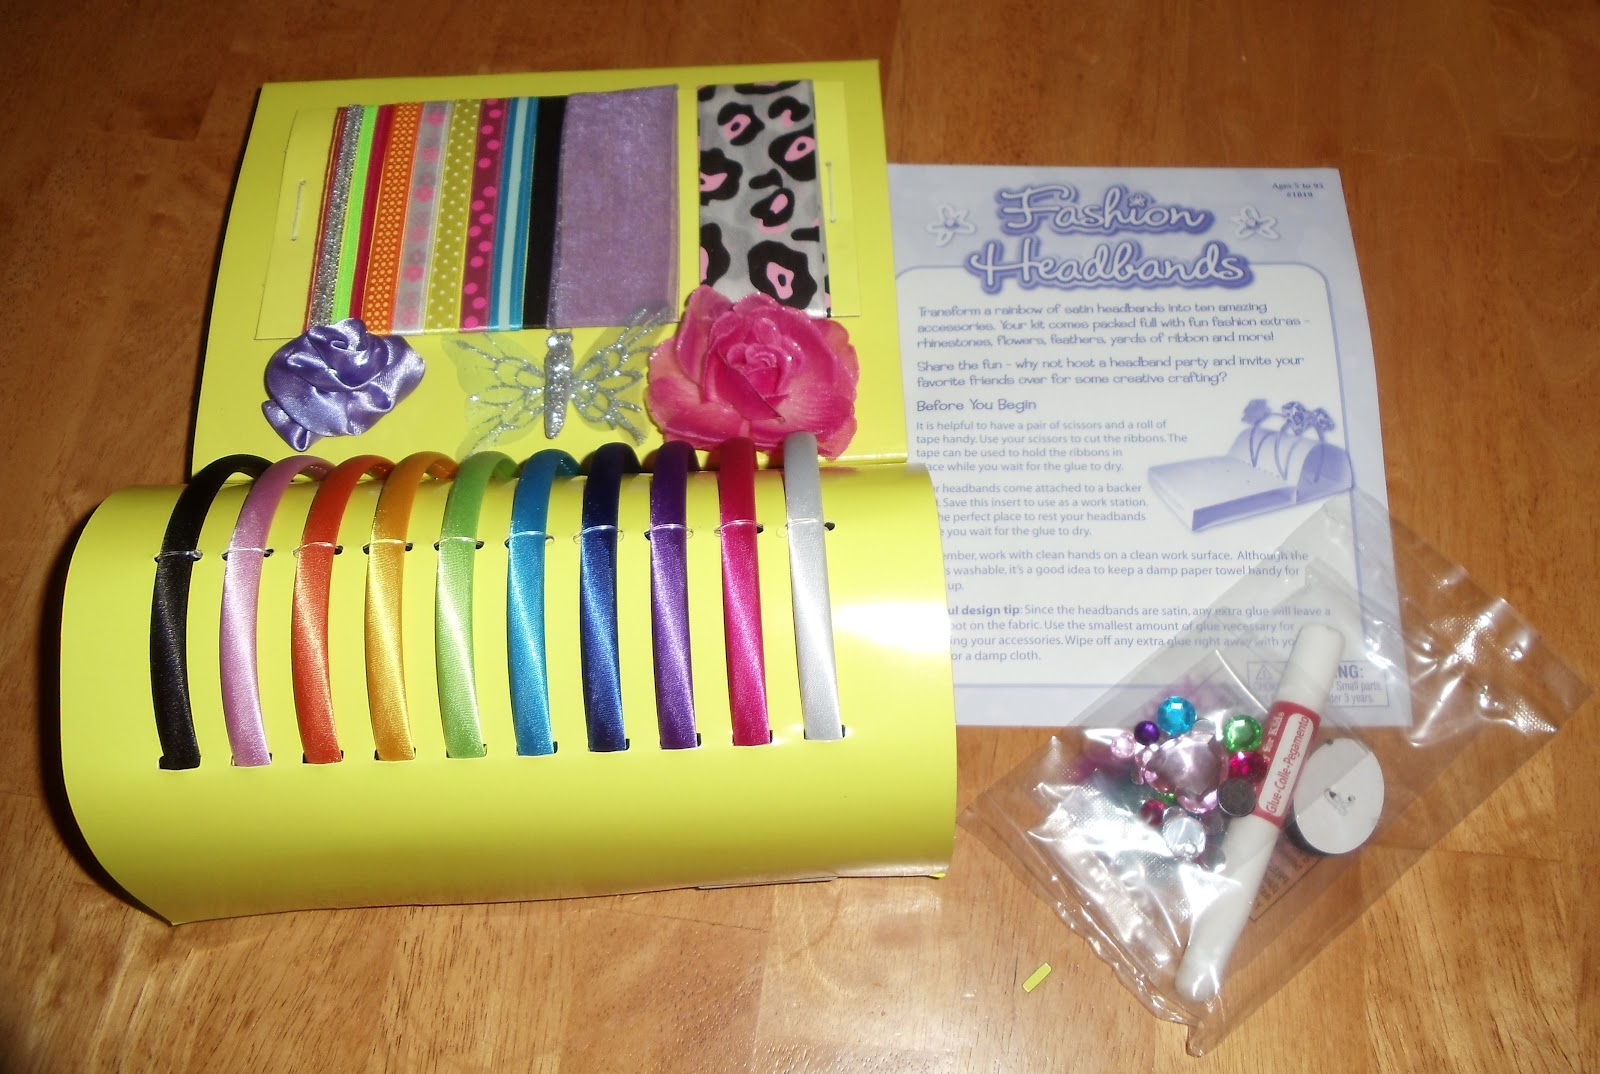 Js reviews and giveaways baby to child event creativity for Creativity for kids fashion headbands craft kit